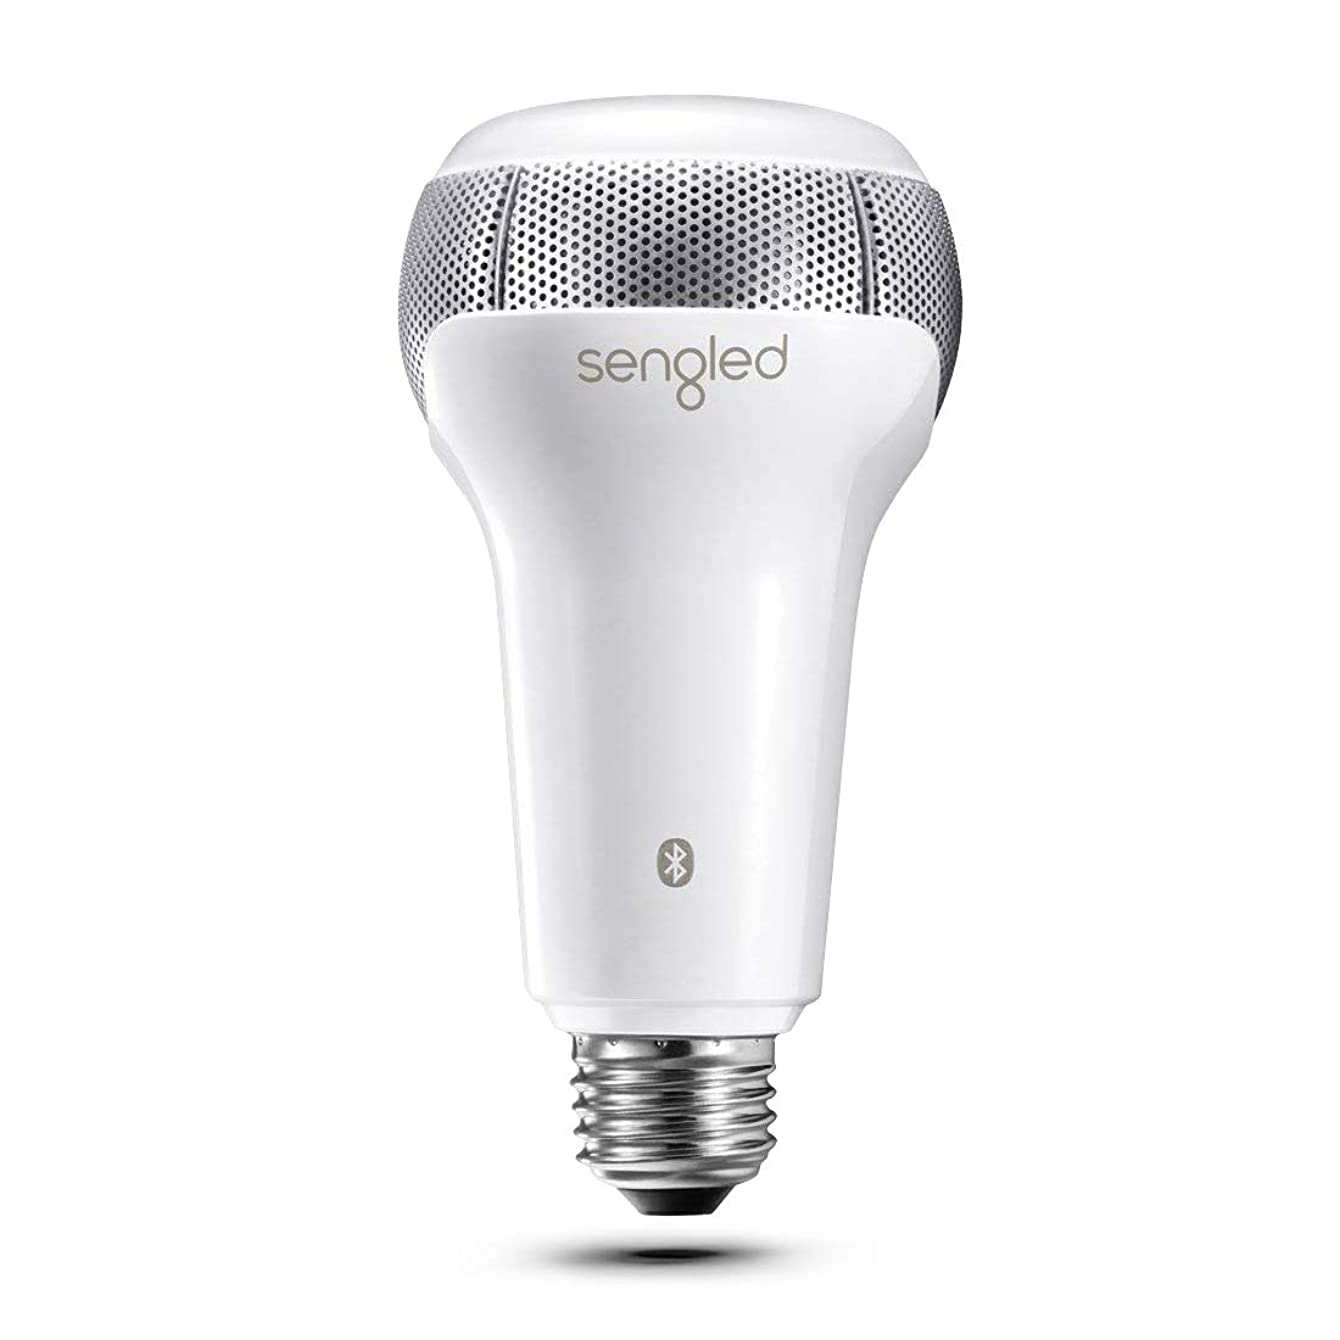 Sengled Solo Smart Bulb with JBL Bluetooth Dual Channel Speakers, App Controlled LED Light Dimmable Bulb, E26 Base, Compatible with Amazon Alexa